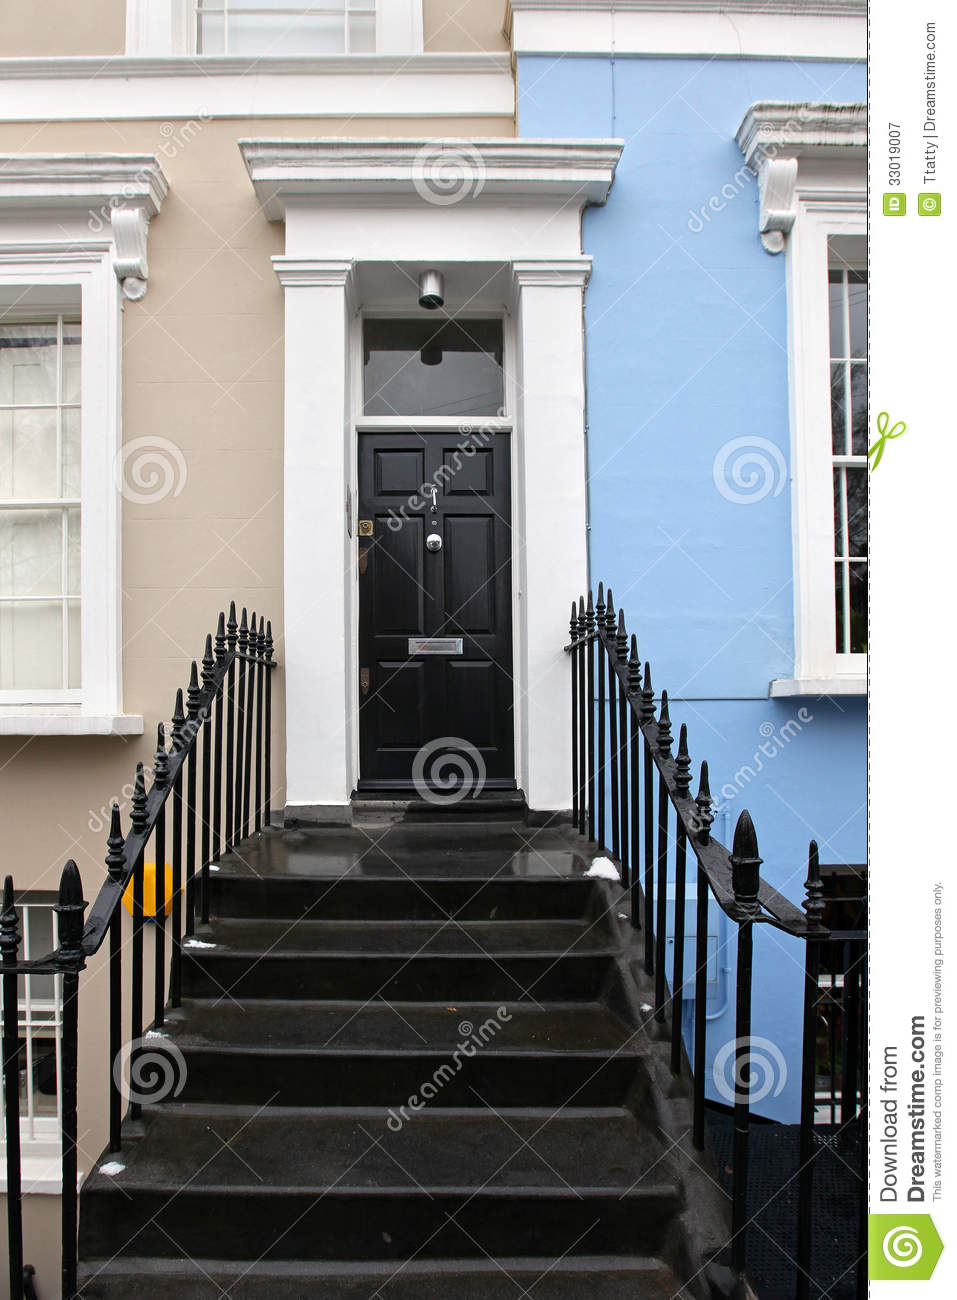 Red entrance door in front of residential house stock photo - Residential Door Royalty Free Stock Photography Image